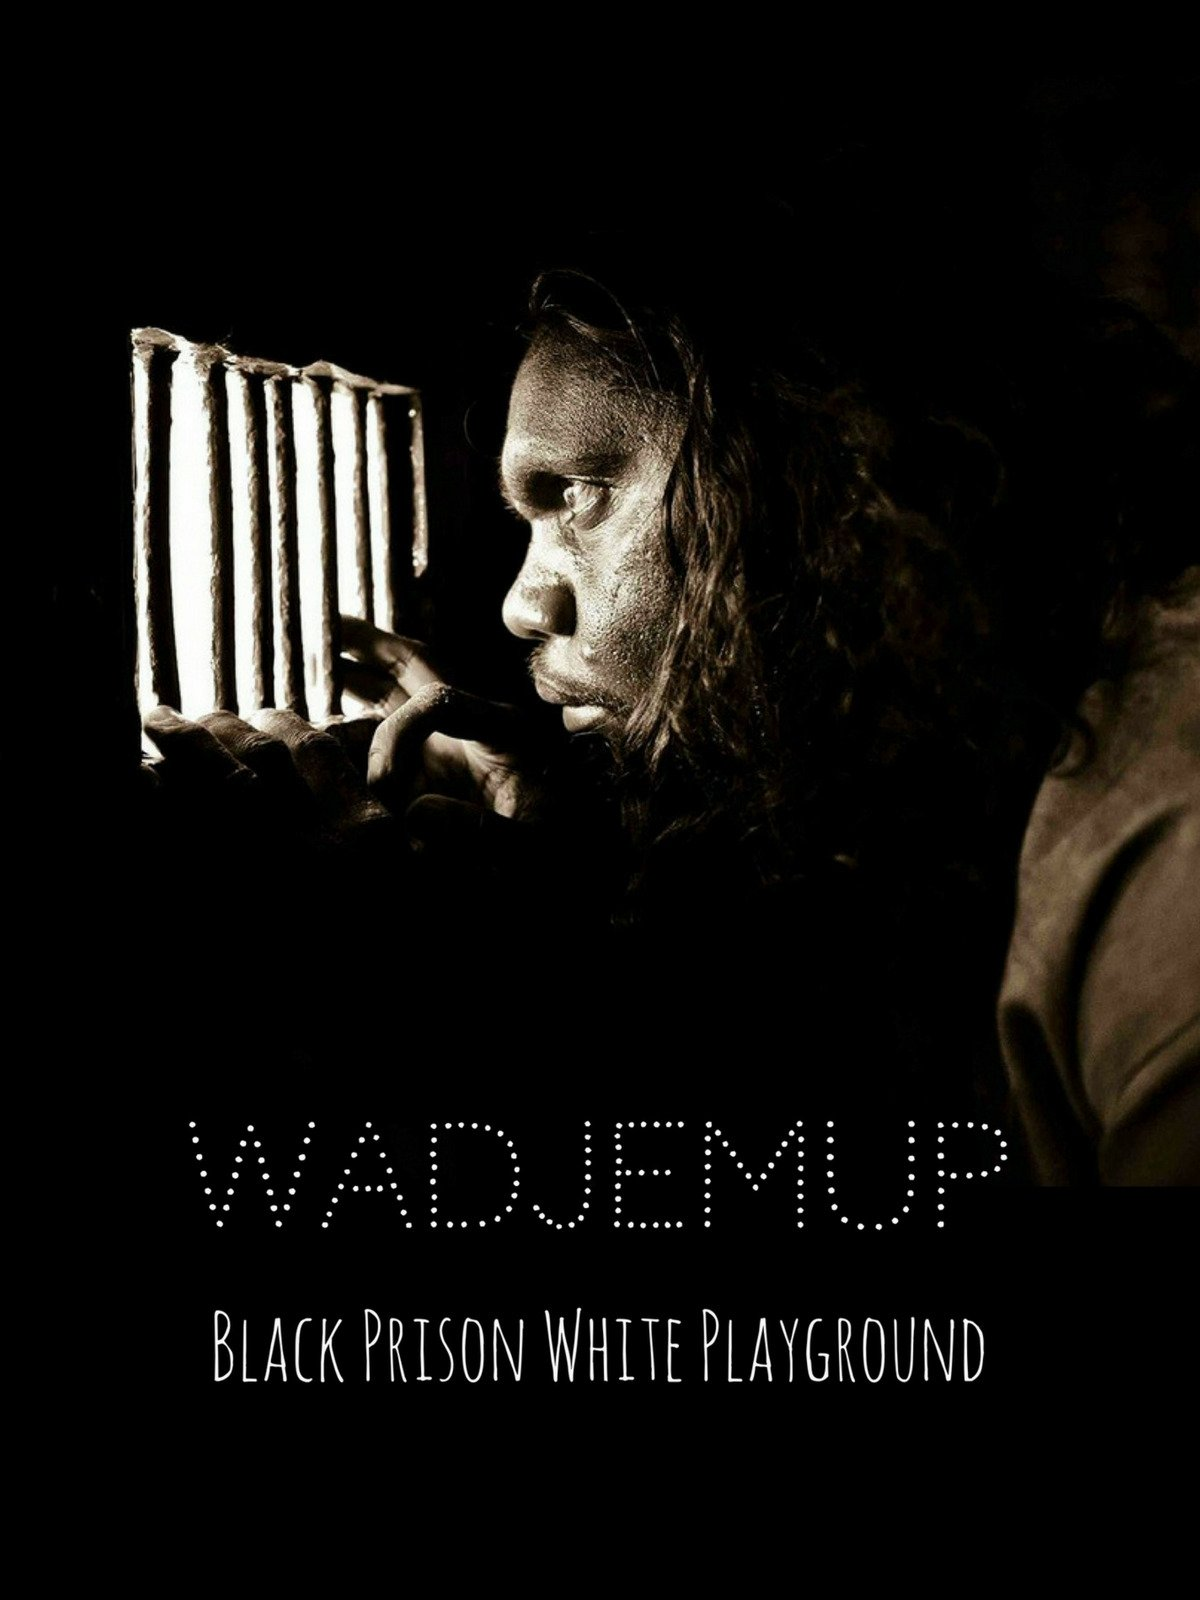 Wadjemup: Black Prison White Playground